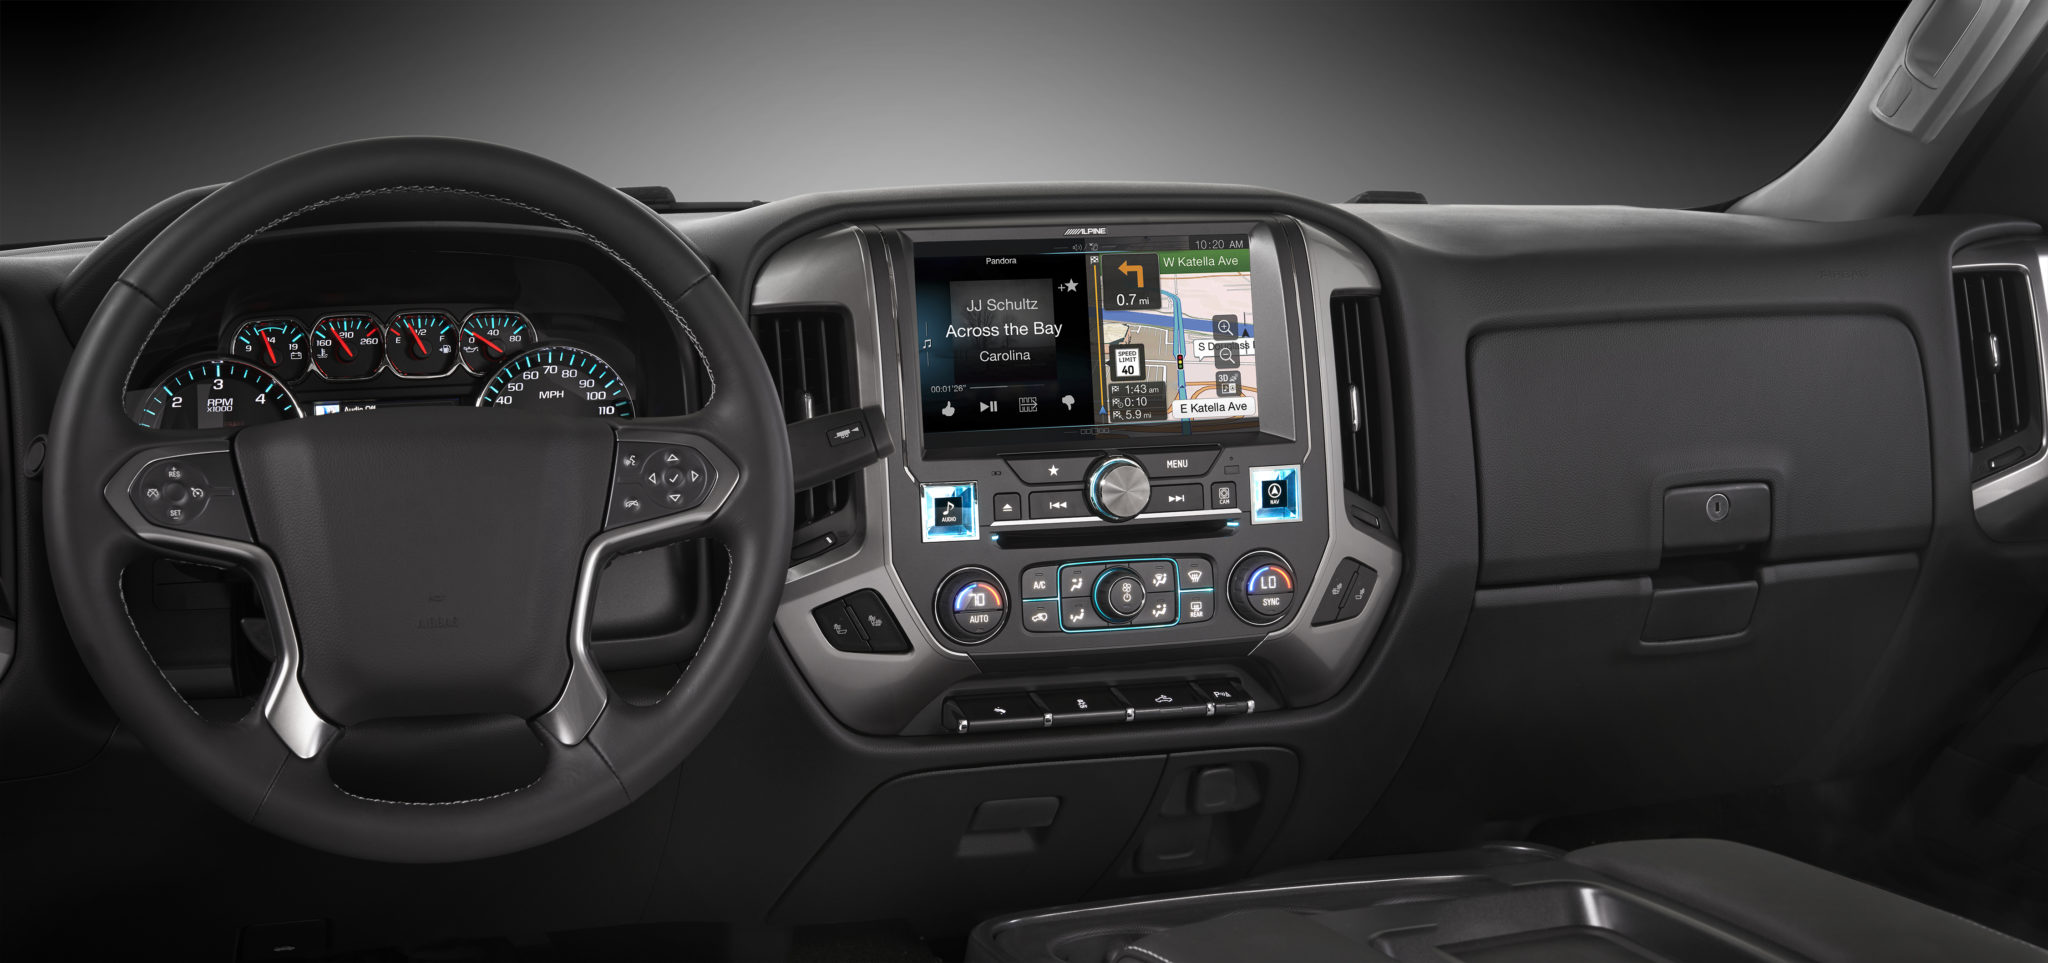 Alpine Restyle In-dash Navigation System For 2014